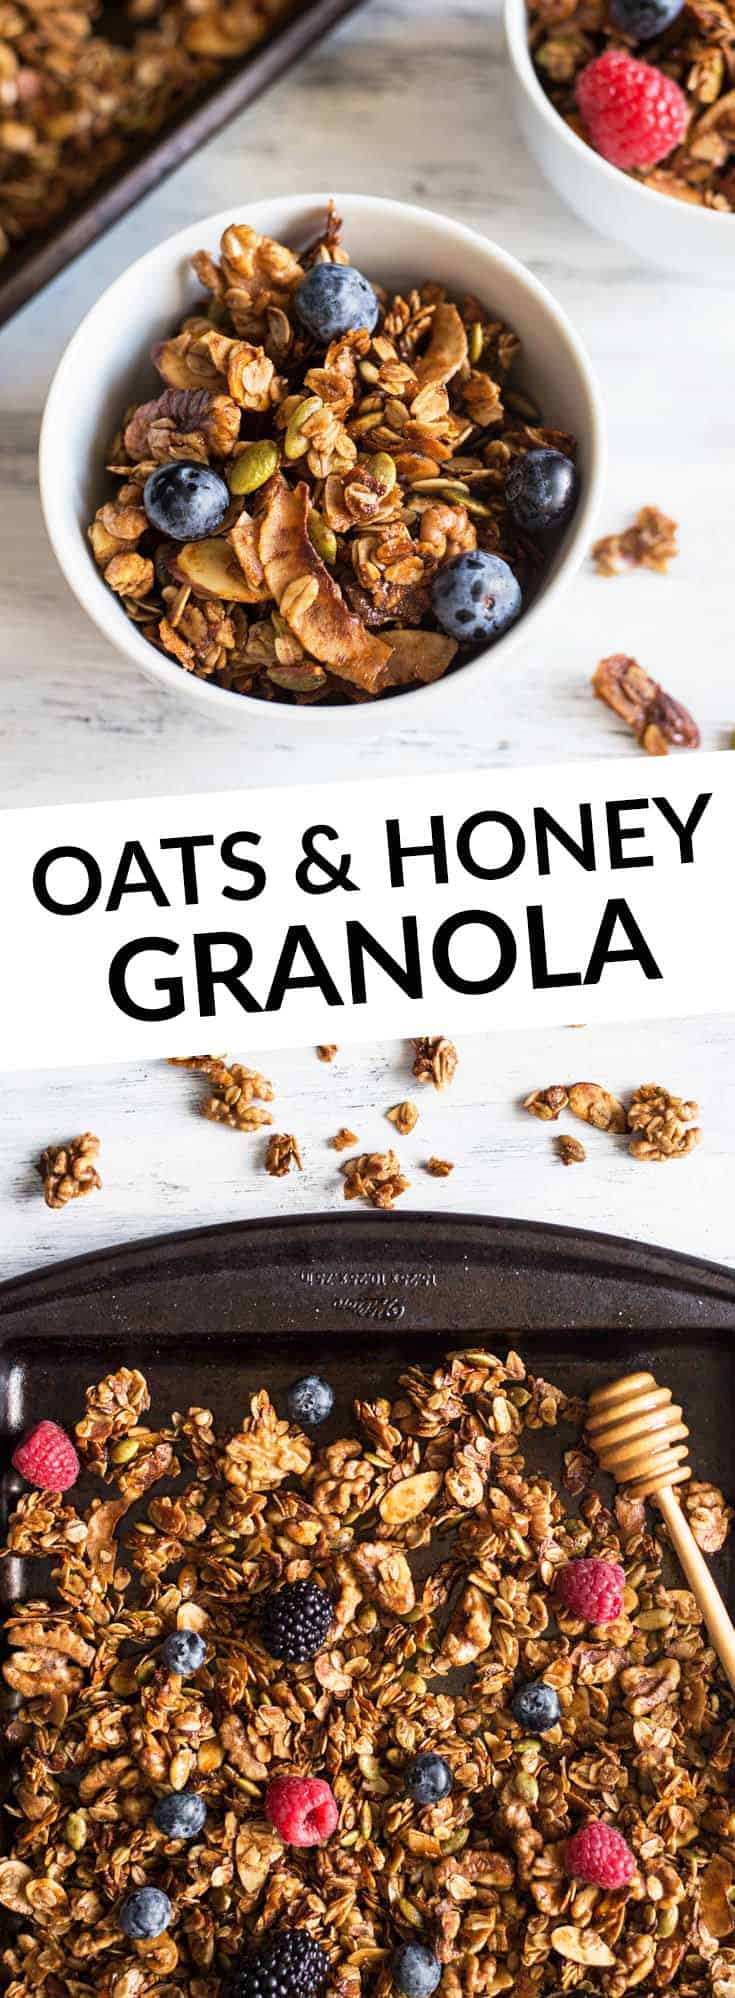 Easy Oat and Honey Granola - a healthy, gluten free granola that's easy to make at home! by @healthynibs